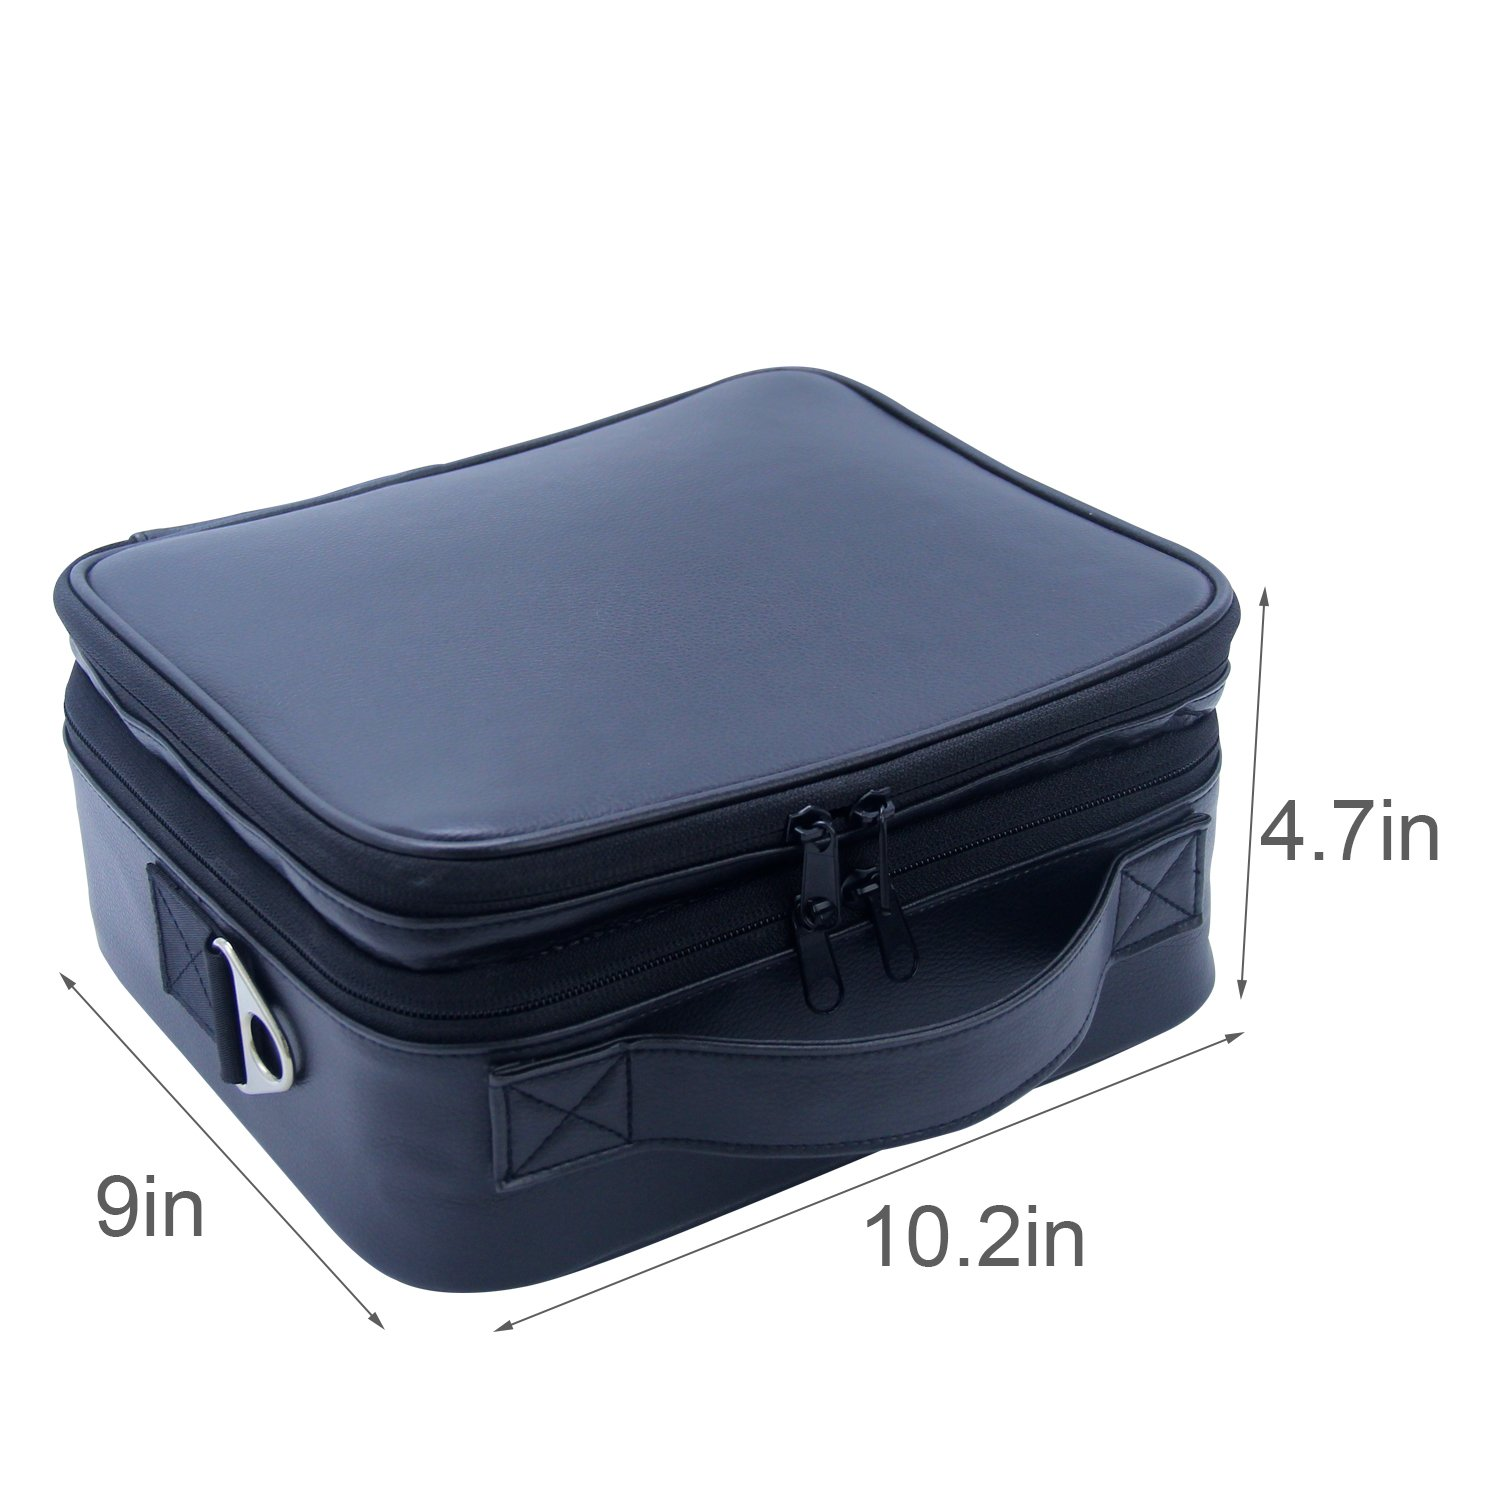 Travel Makeup Bag Makeup Train Case 2 Layer Premium PU Leather Cosmetic Makeup Brush Organizer with Mirror Portable Artist Storage Bag Toiletry Bag Perfect Gift (Black) by Relavel (Image #4)